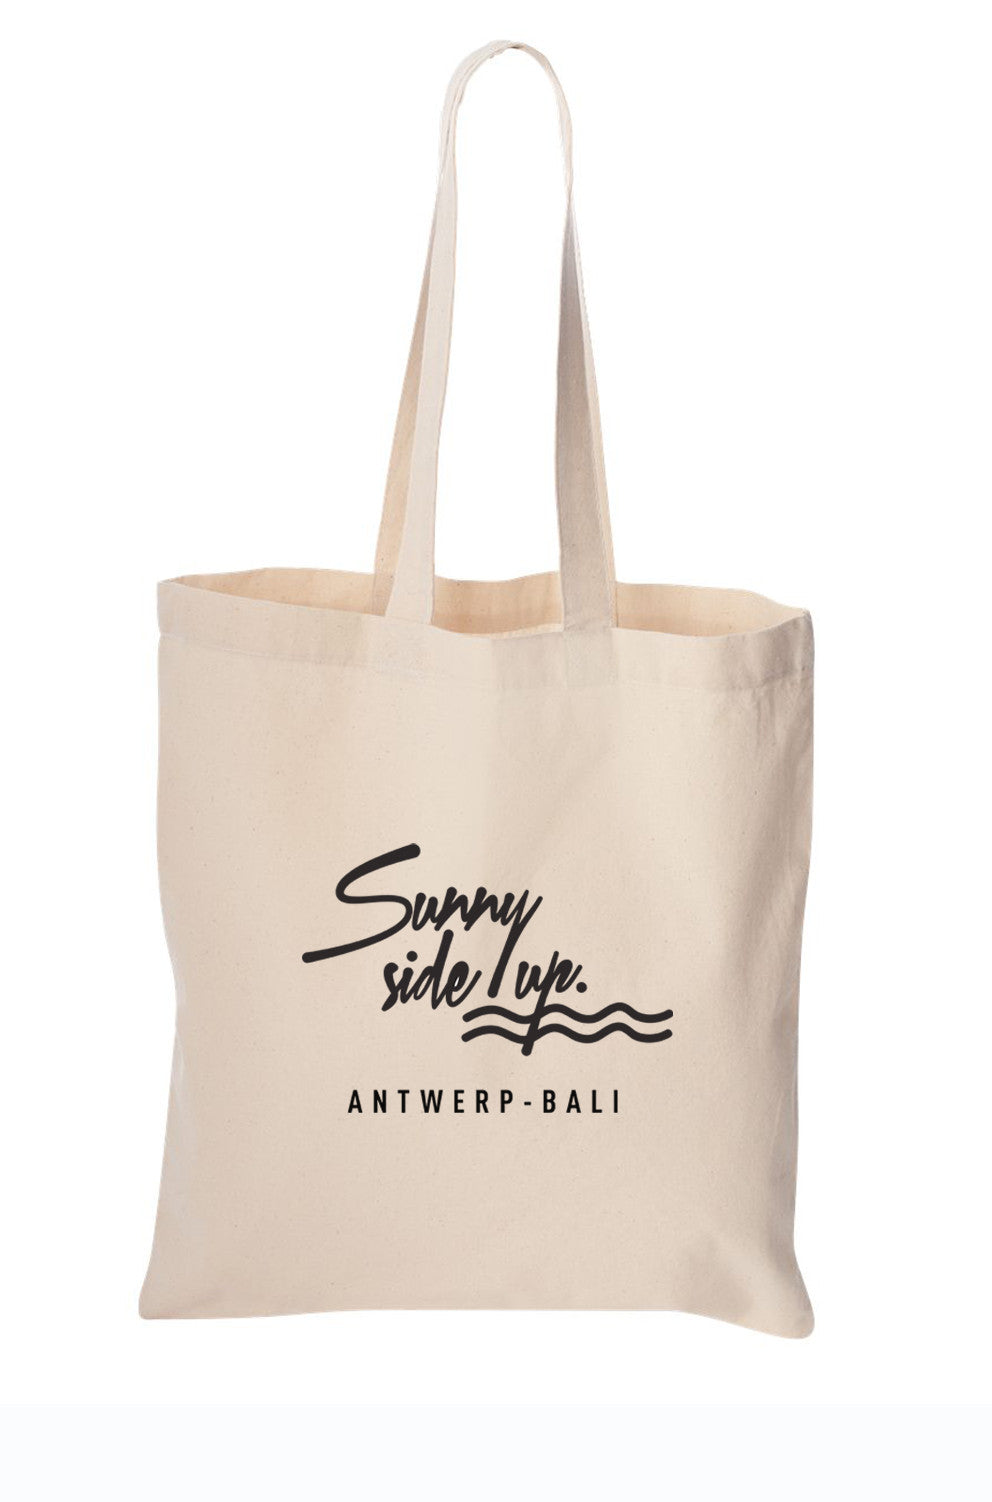 The Original Sunny Side Up Tote Bag100% organic cottonPart of the money will be donated to B.A.R.C Bali (Dog) Adoption & Rehabilitation Centre. Help us Help Them.